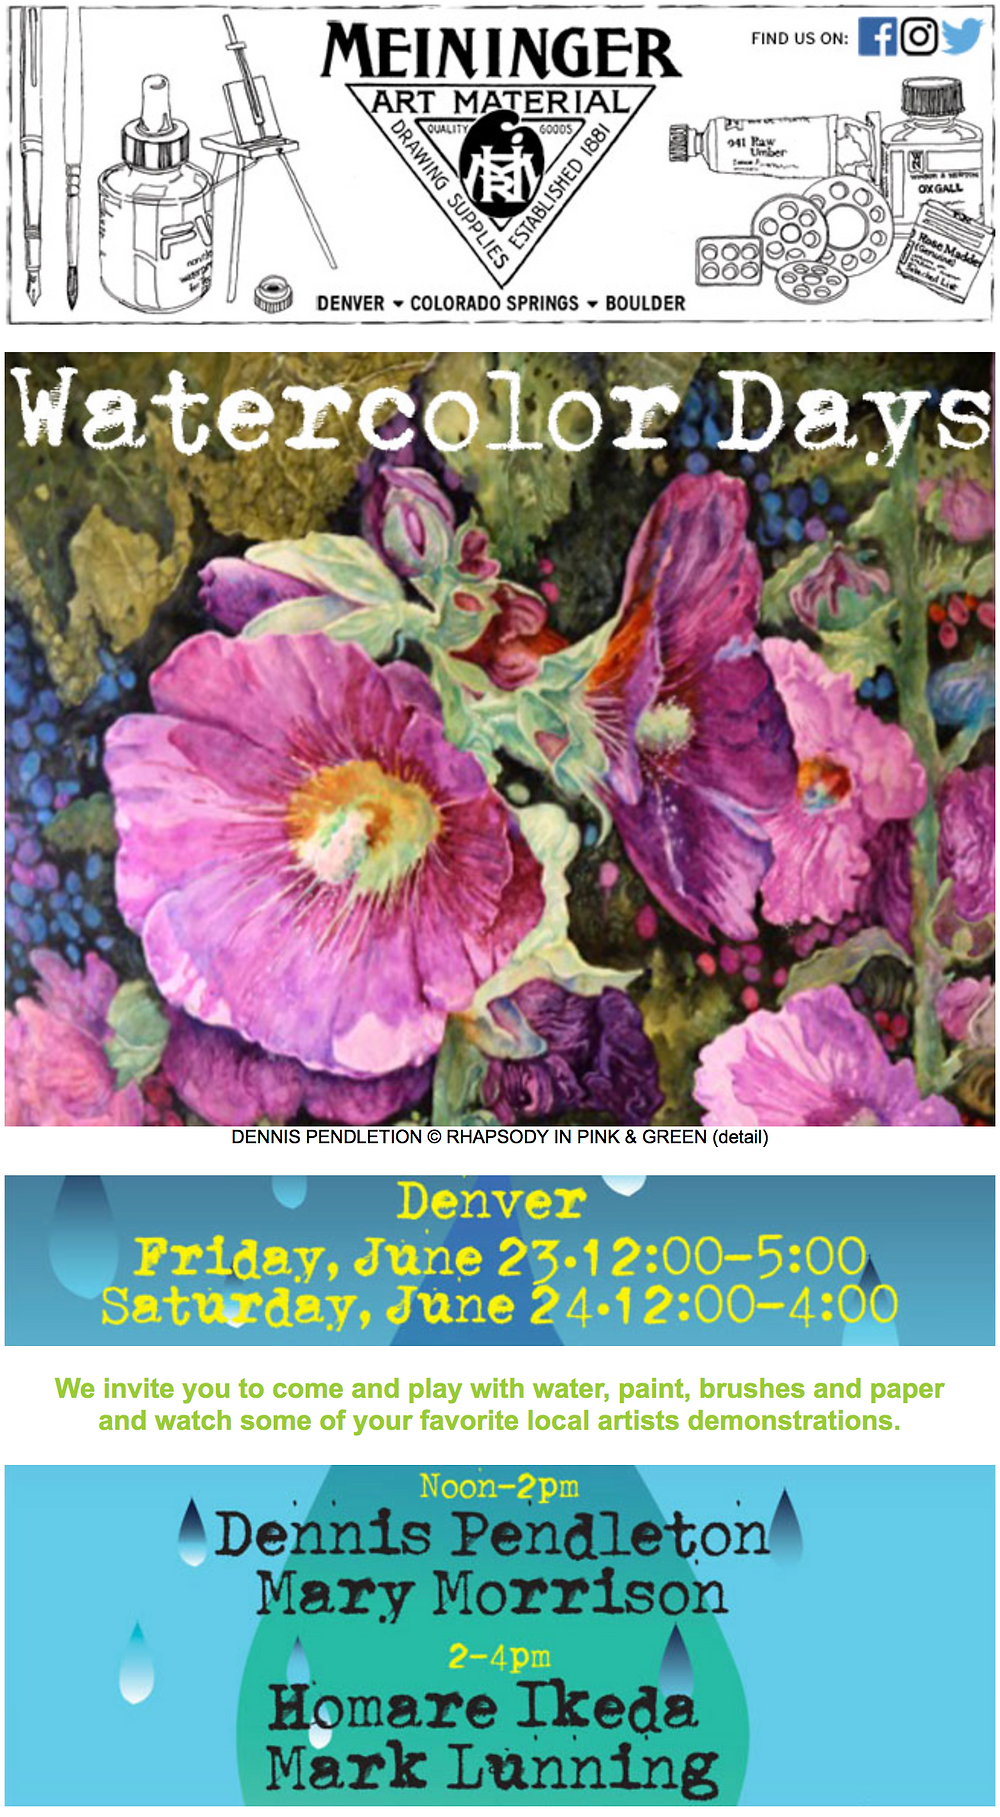 Watercolor Days at Meiningers